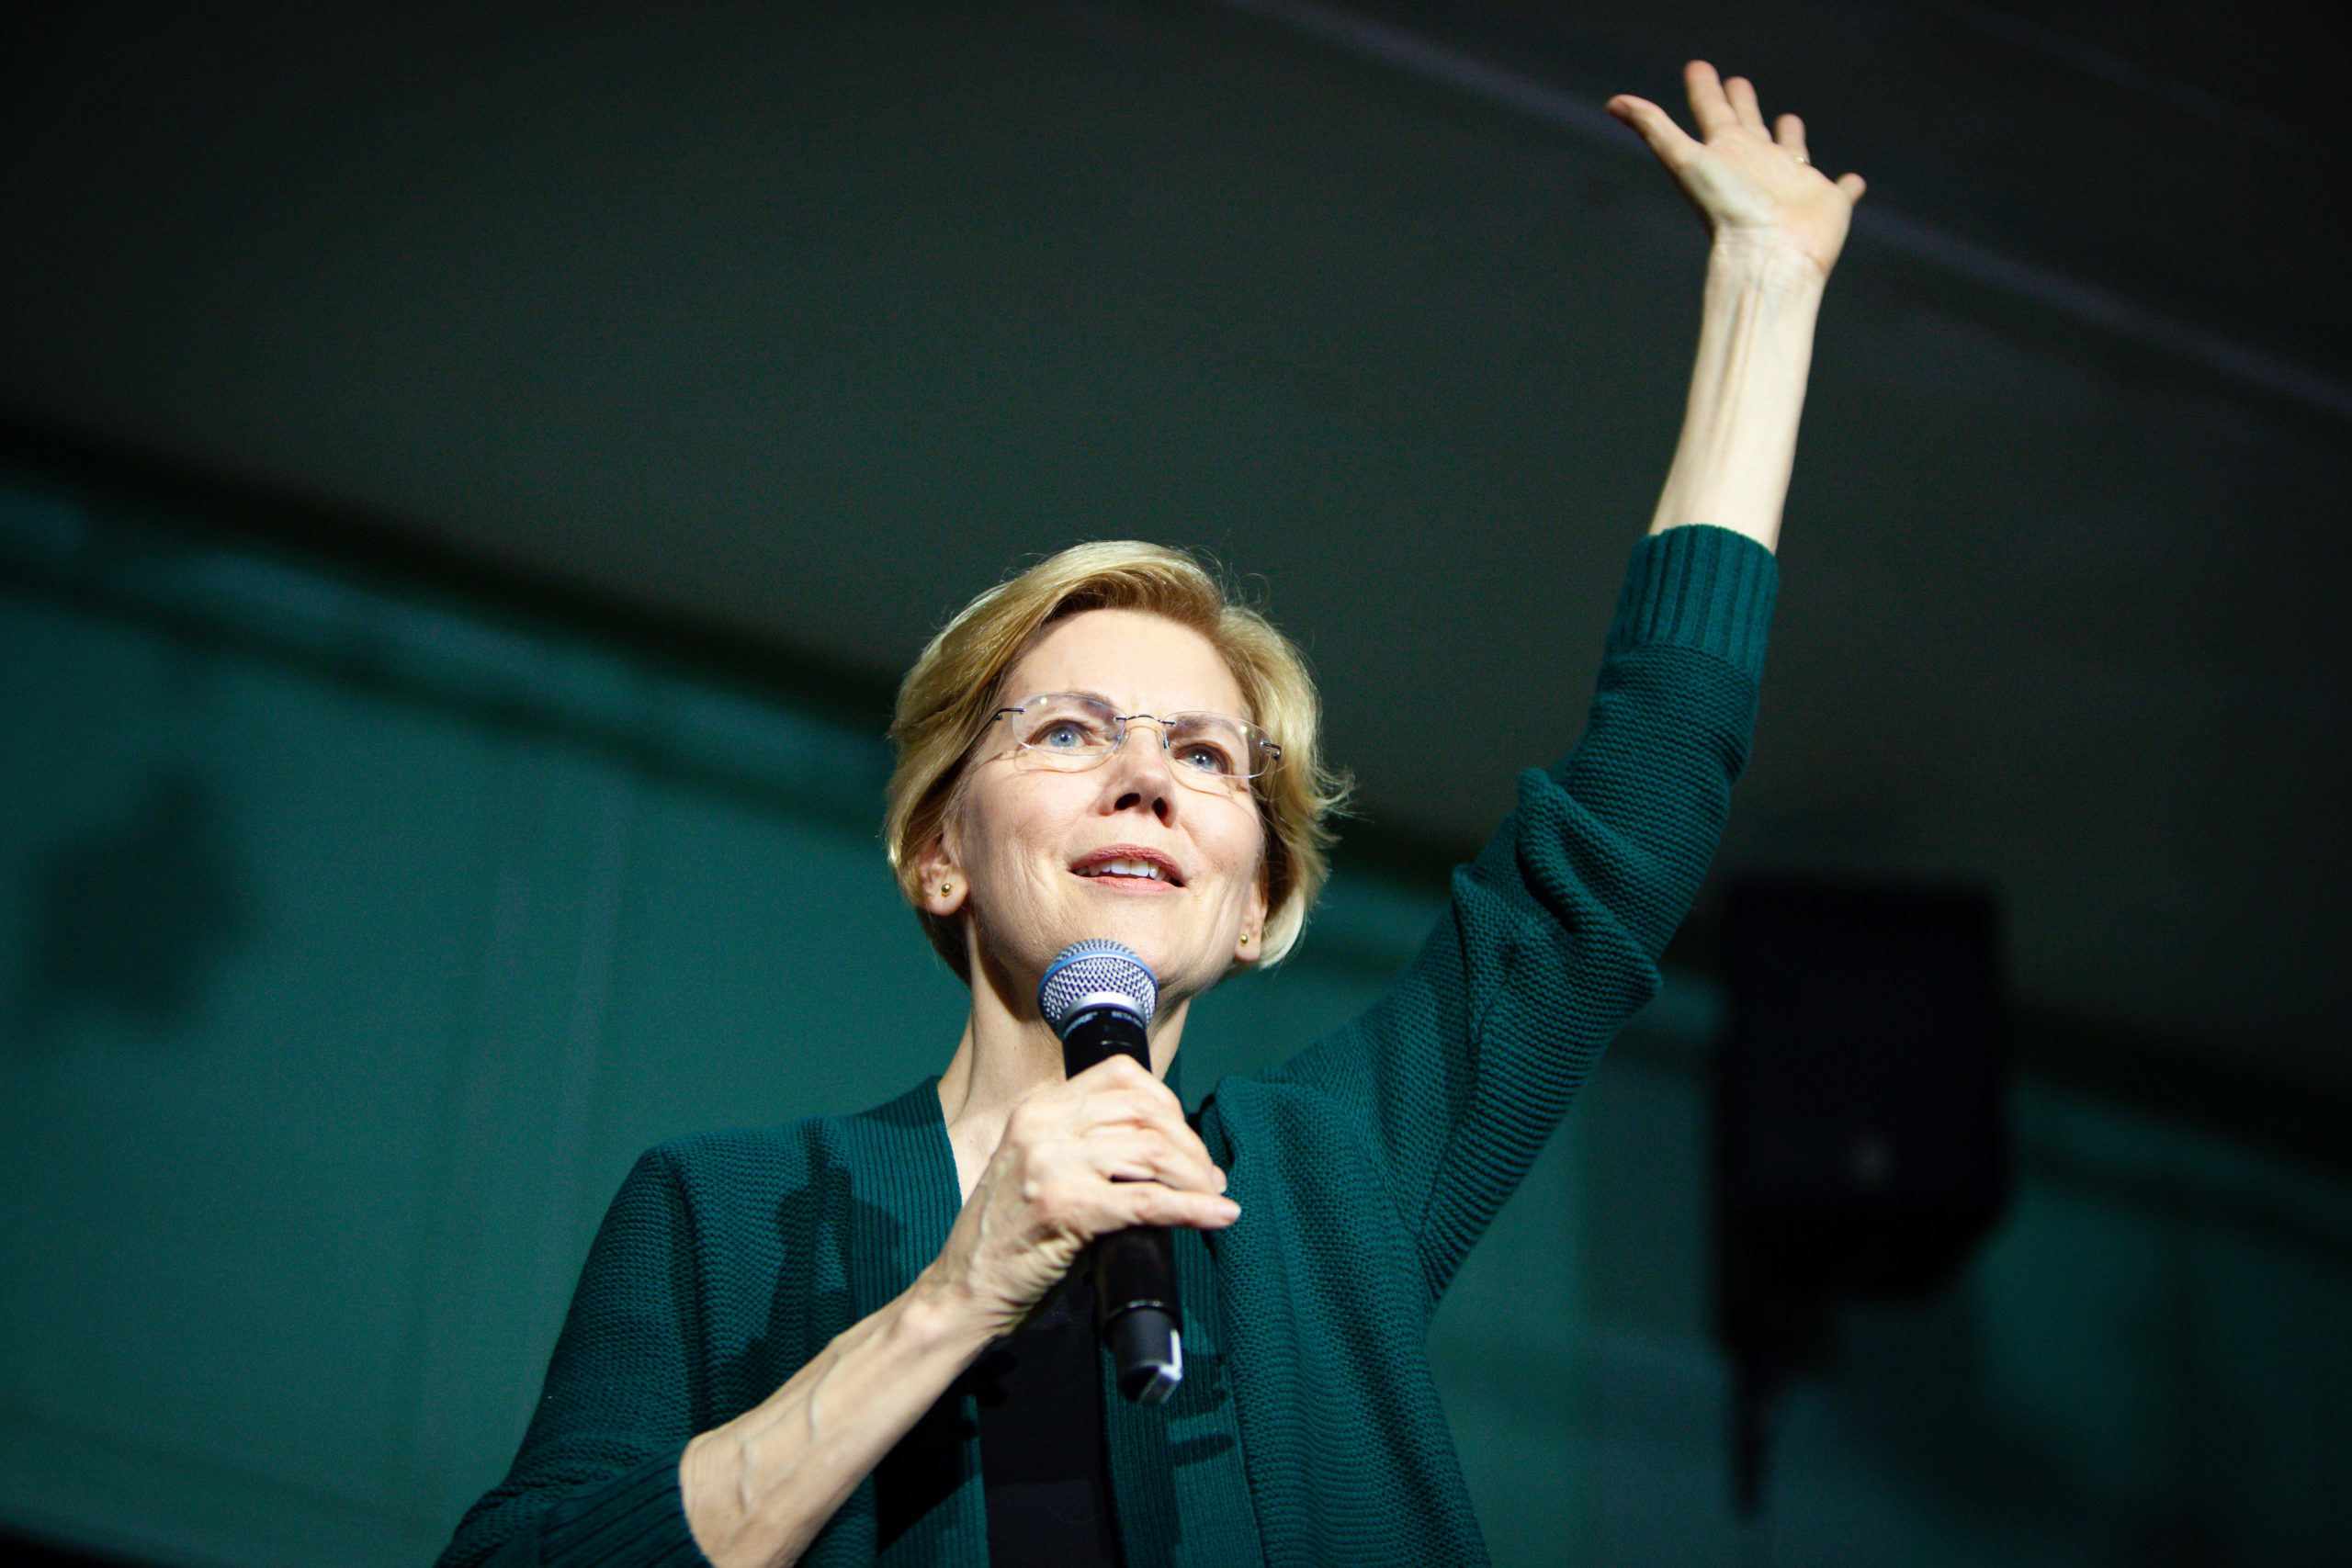 Elizabeth Warren with microphone in hand and other hand raised